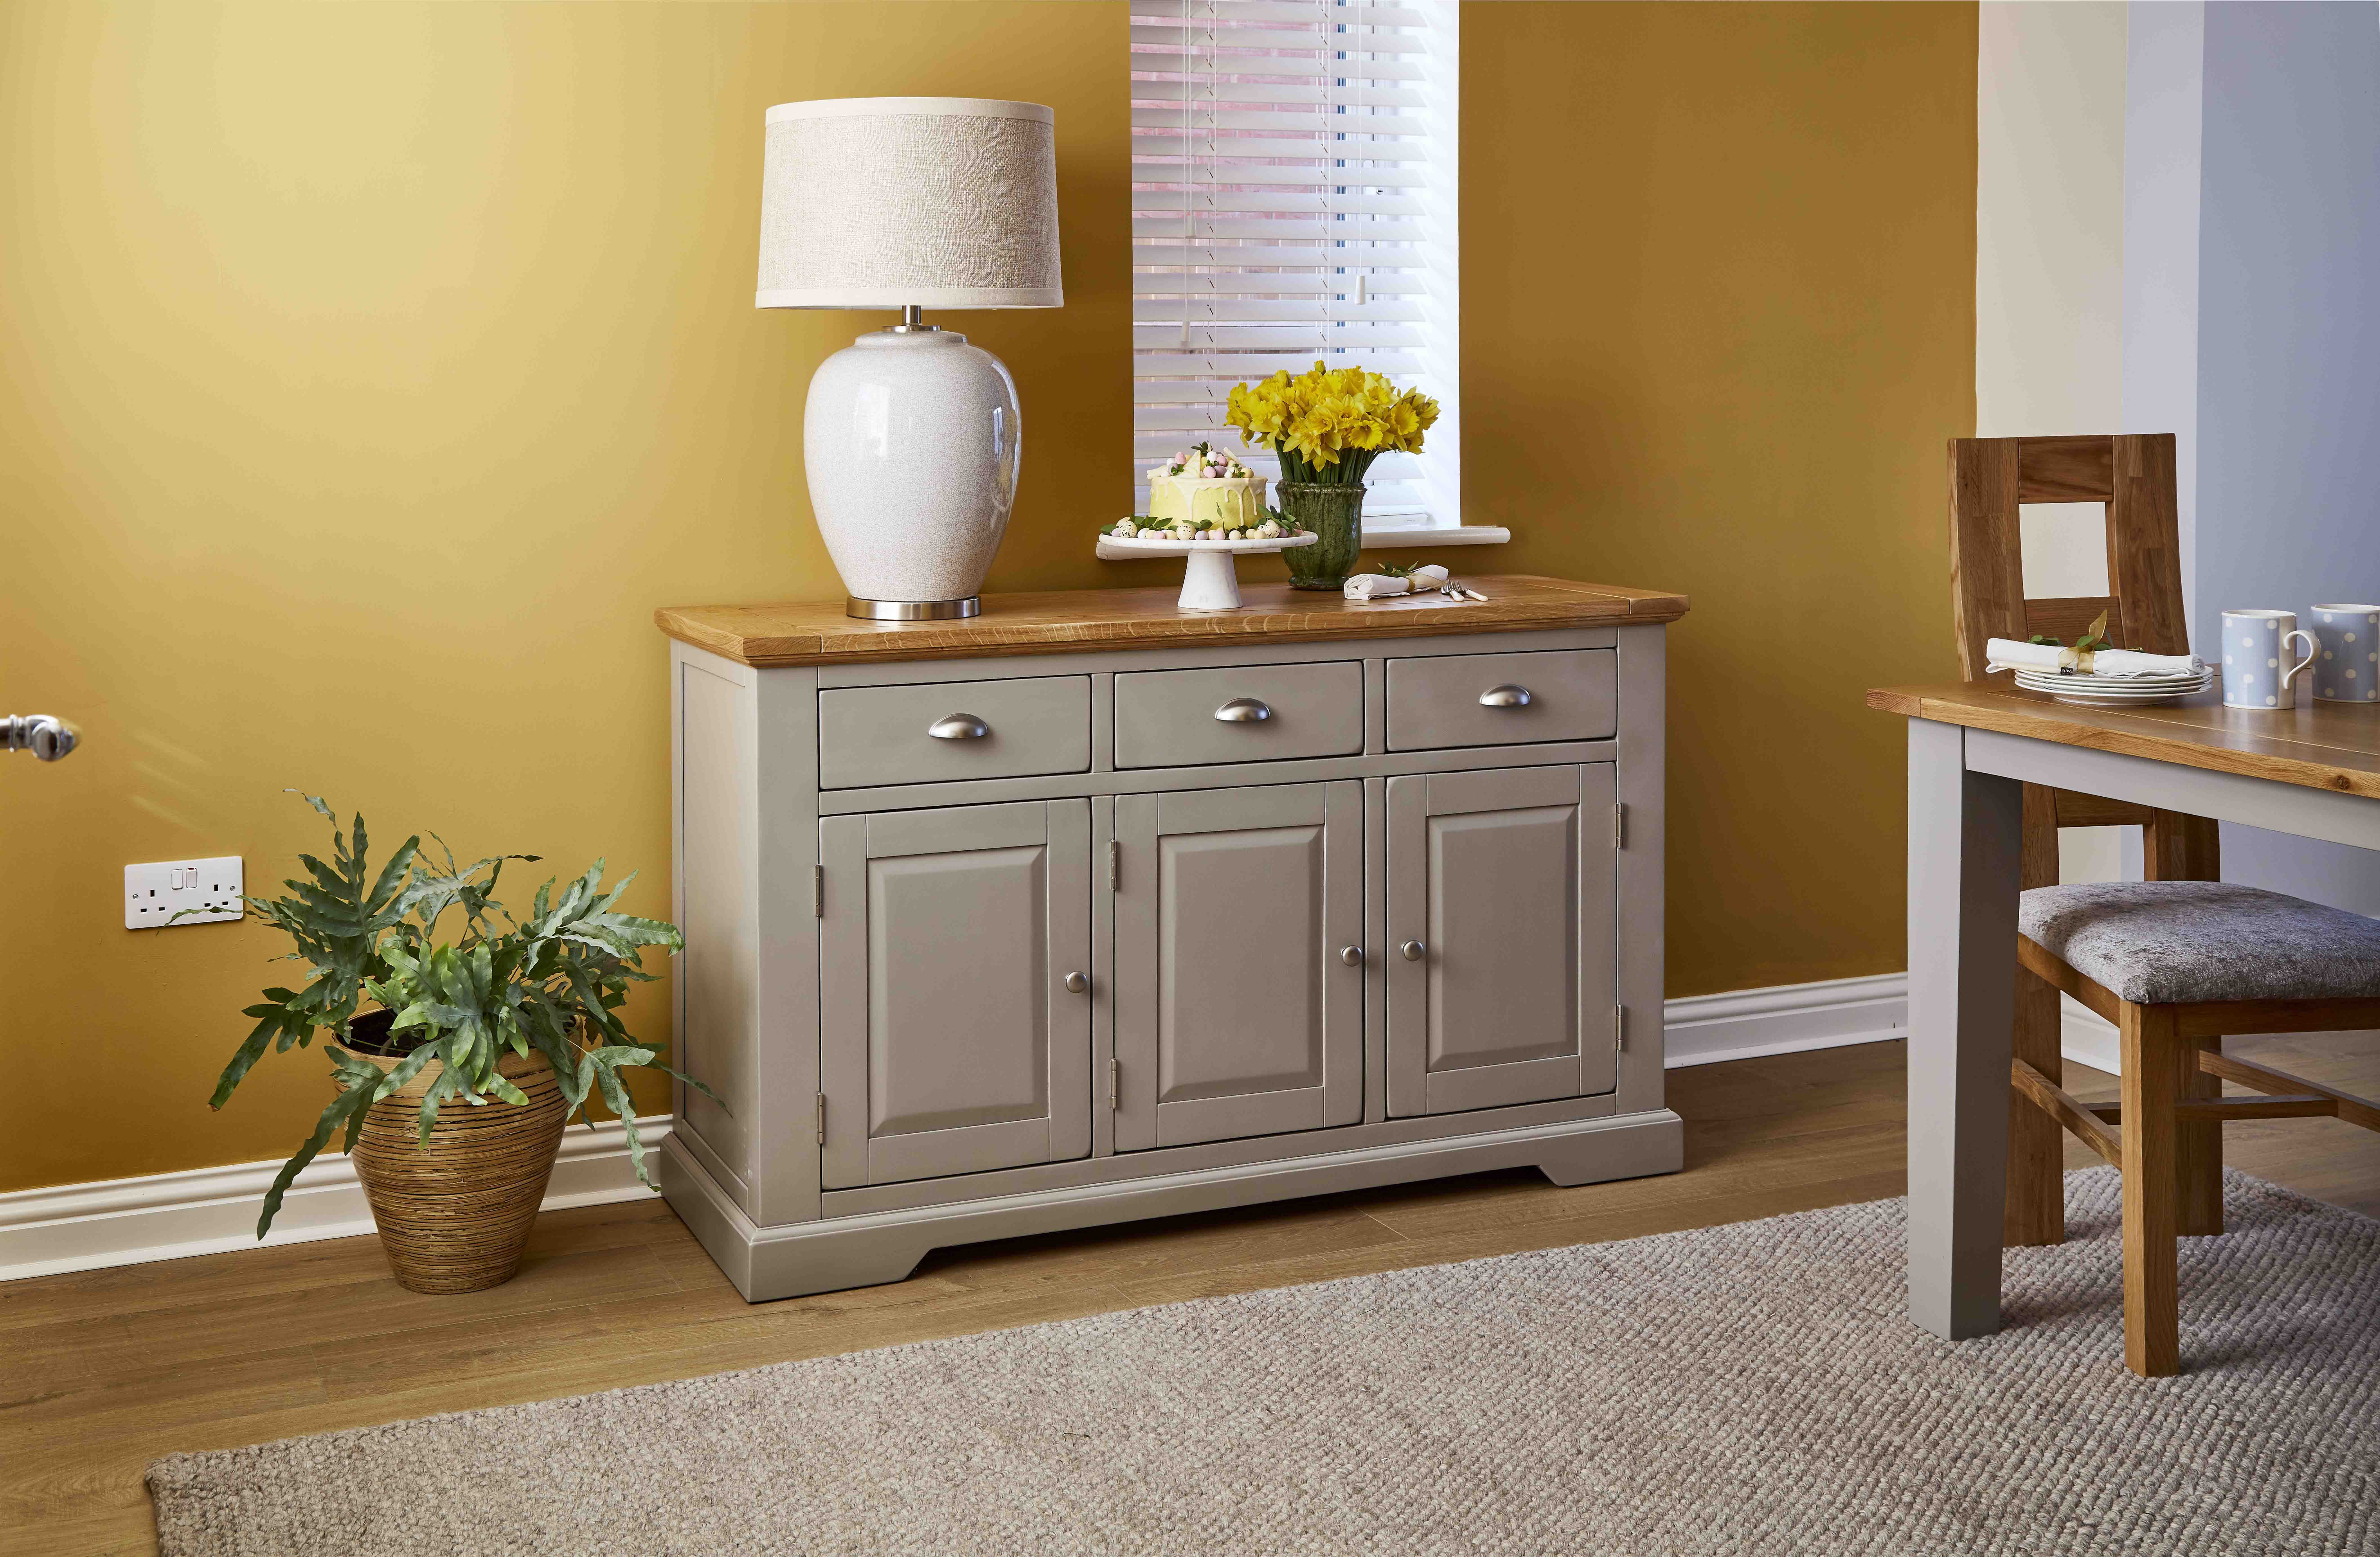 Grey sideboard against yellow living room wall